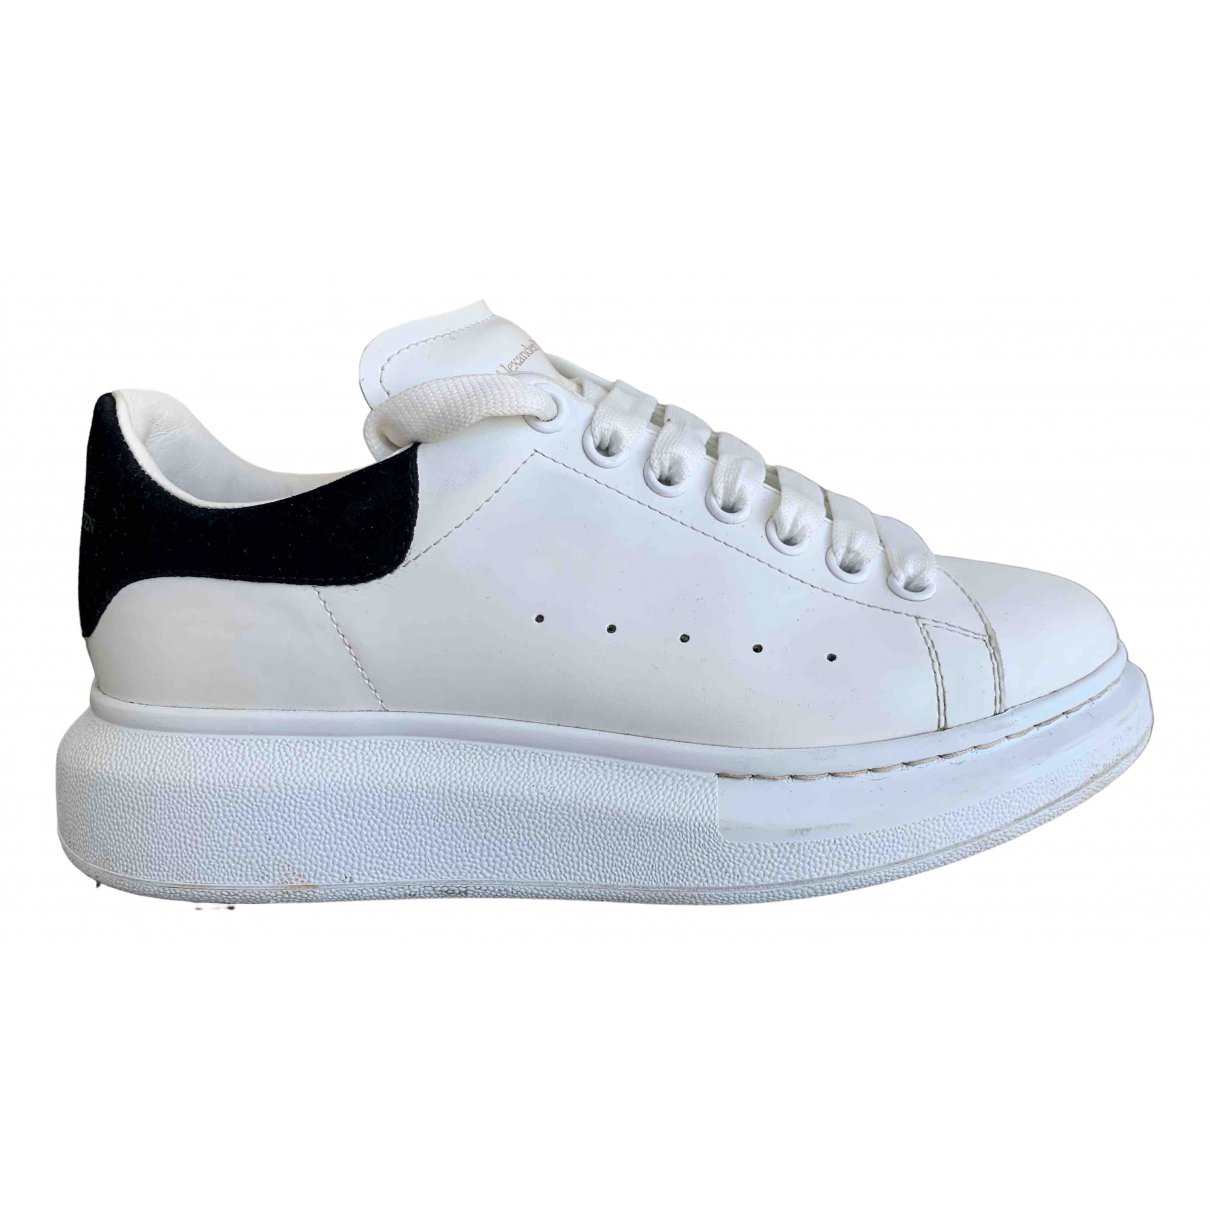 Alexander Mcqueen Oversize White Leather Trainers for Men 39.5 EU